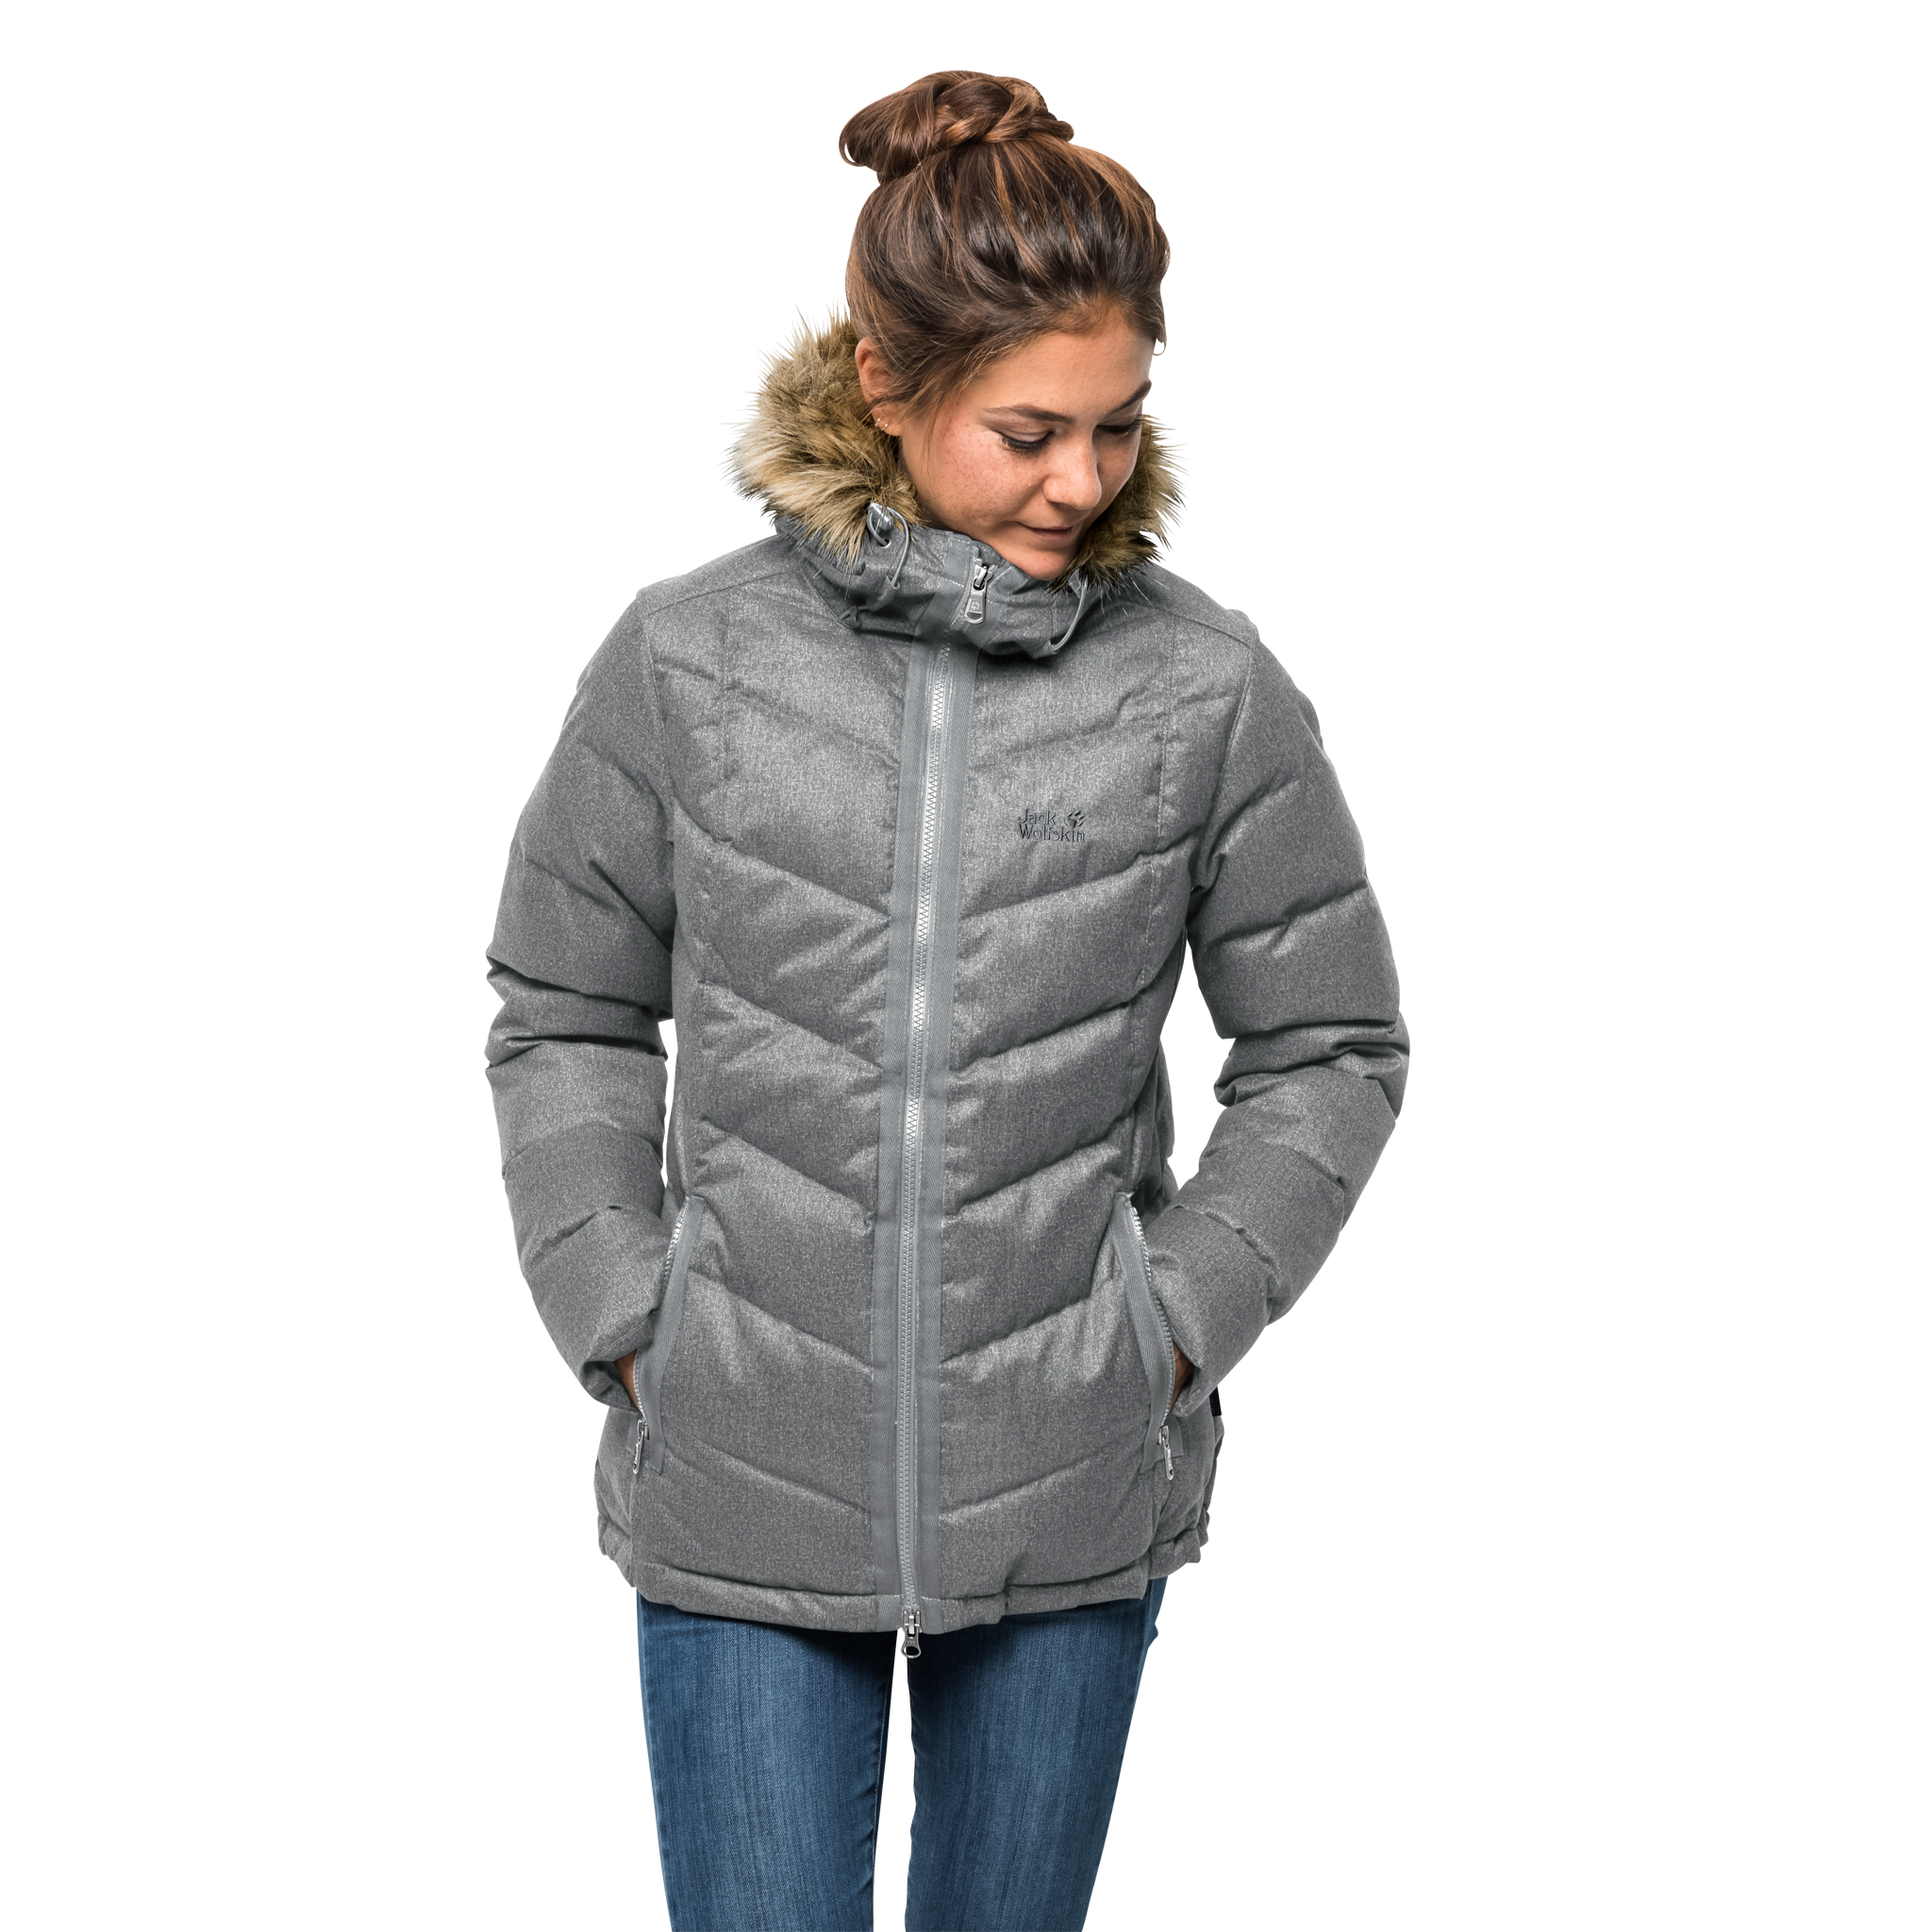 JACK WOLFSKIN Daunenjacke 'Baffin Bay' in grau | ABOUT YOU